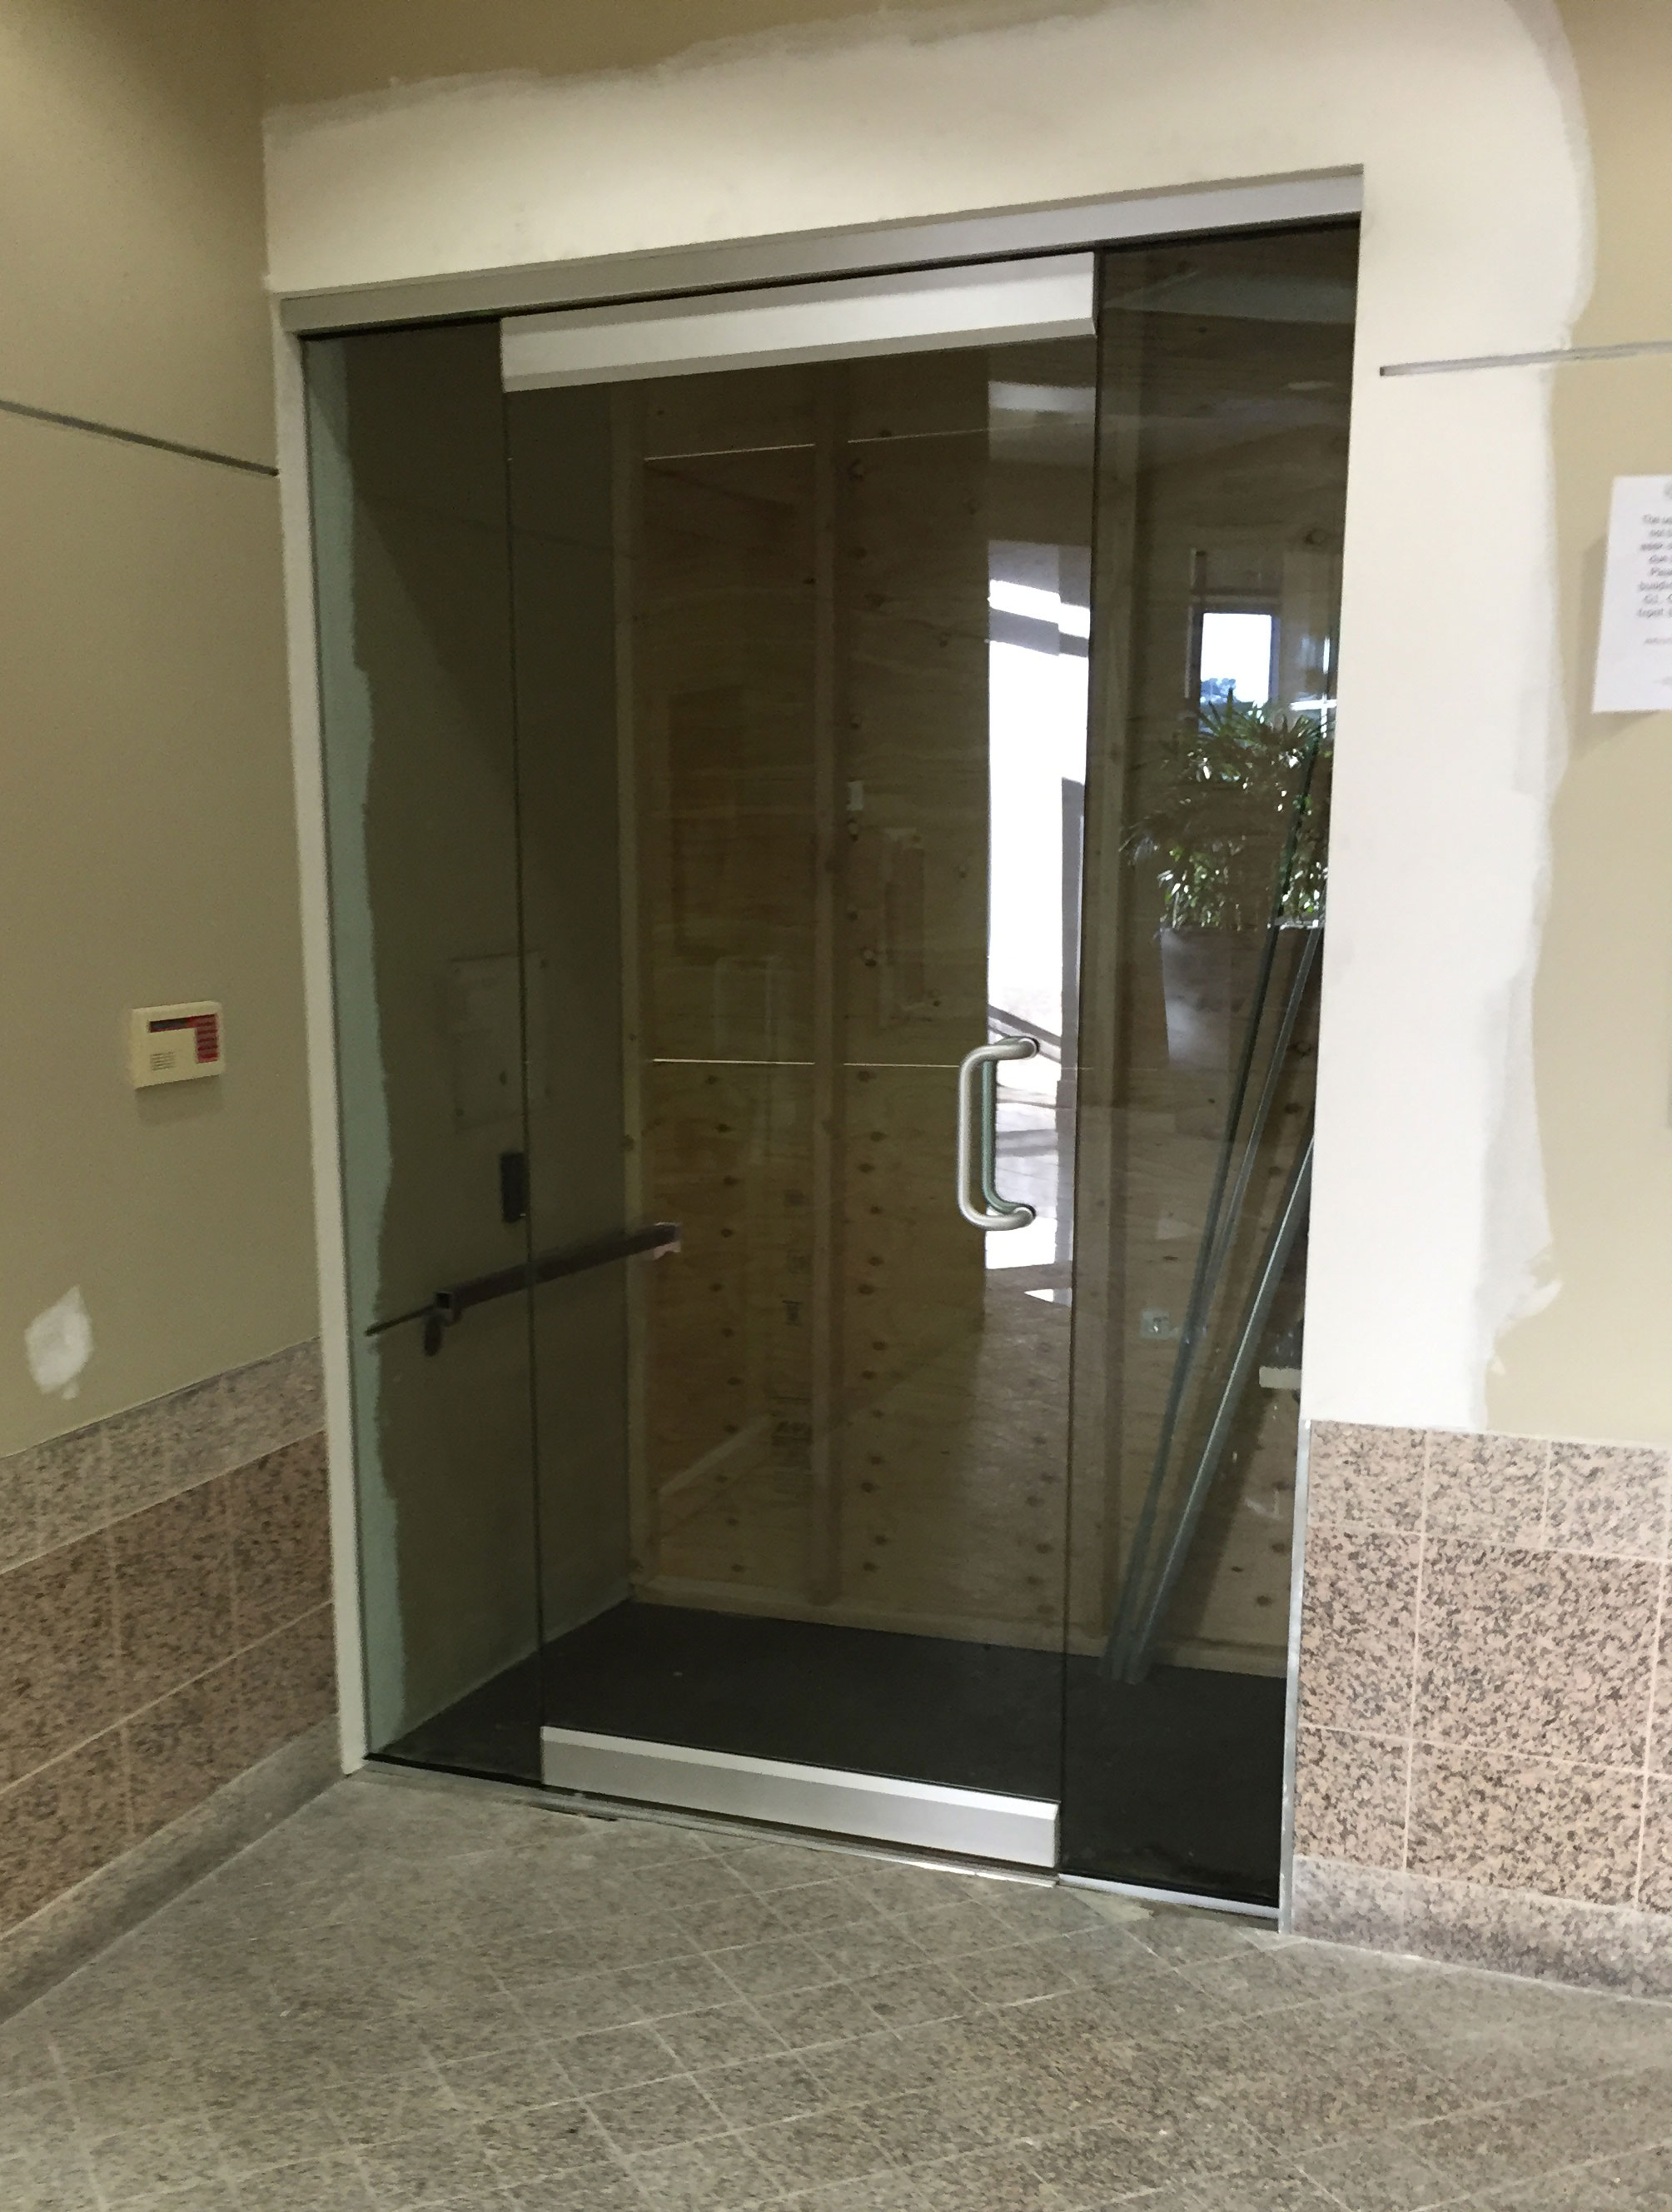 Commercial Offices Doors Aaa Glass And Mirror Inc Showers